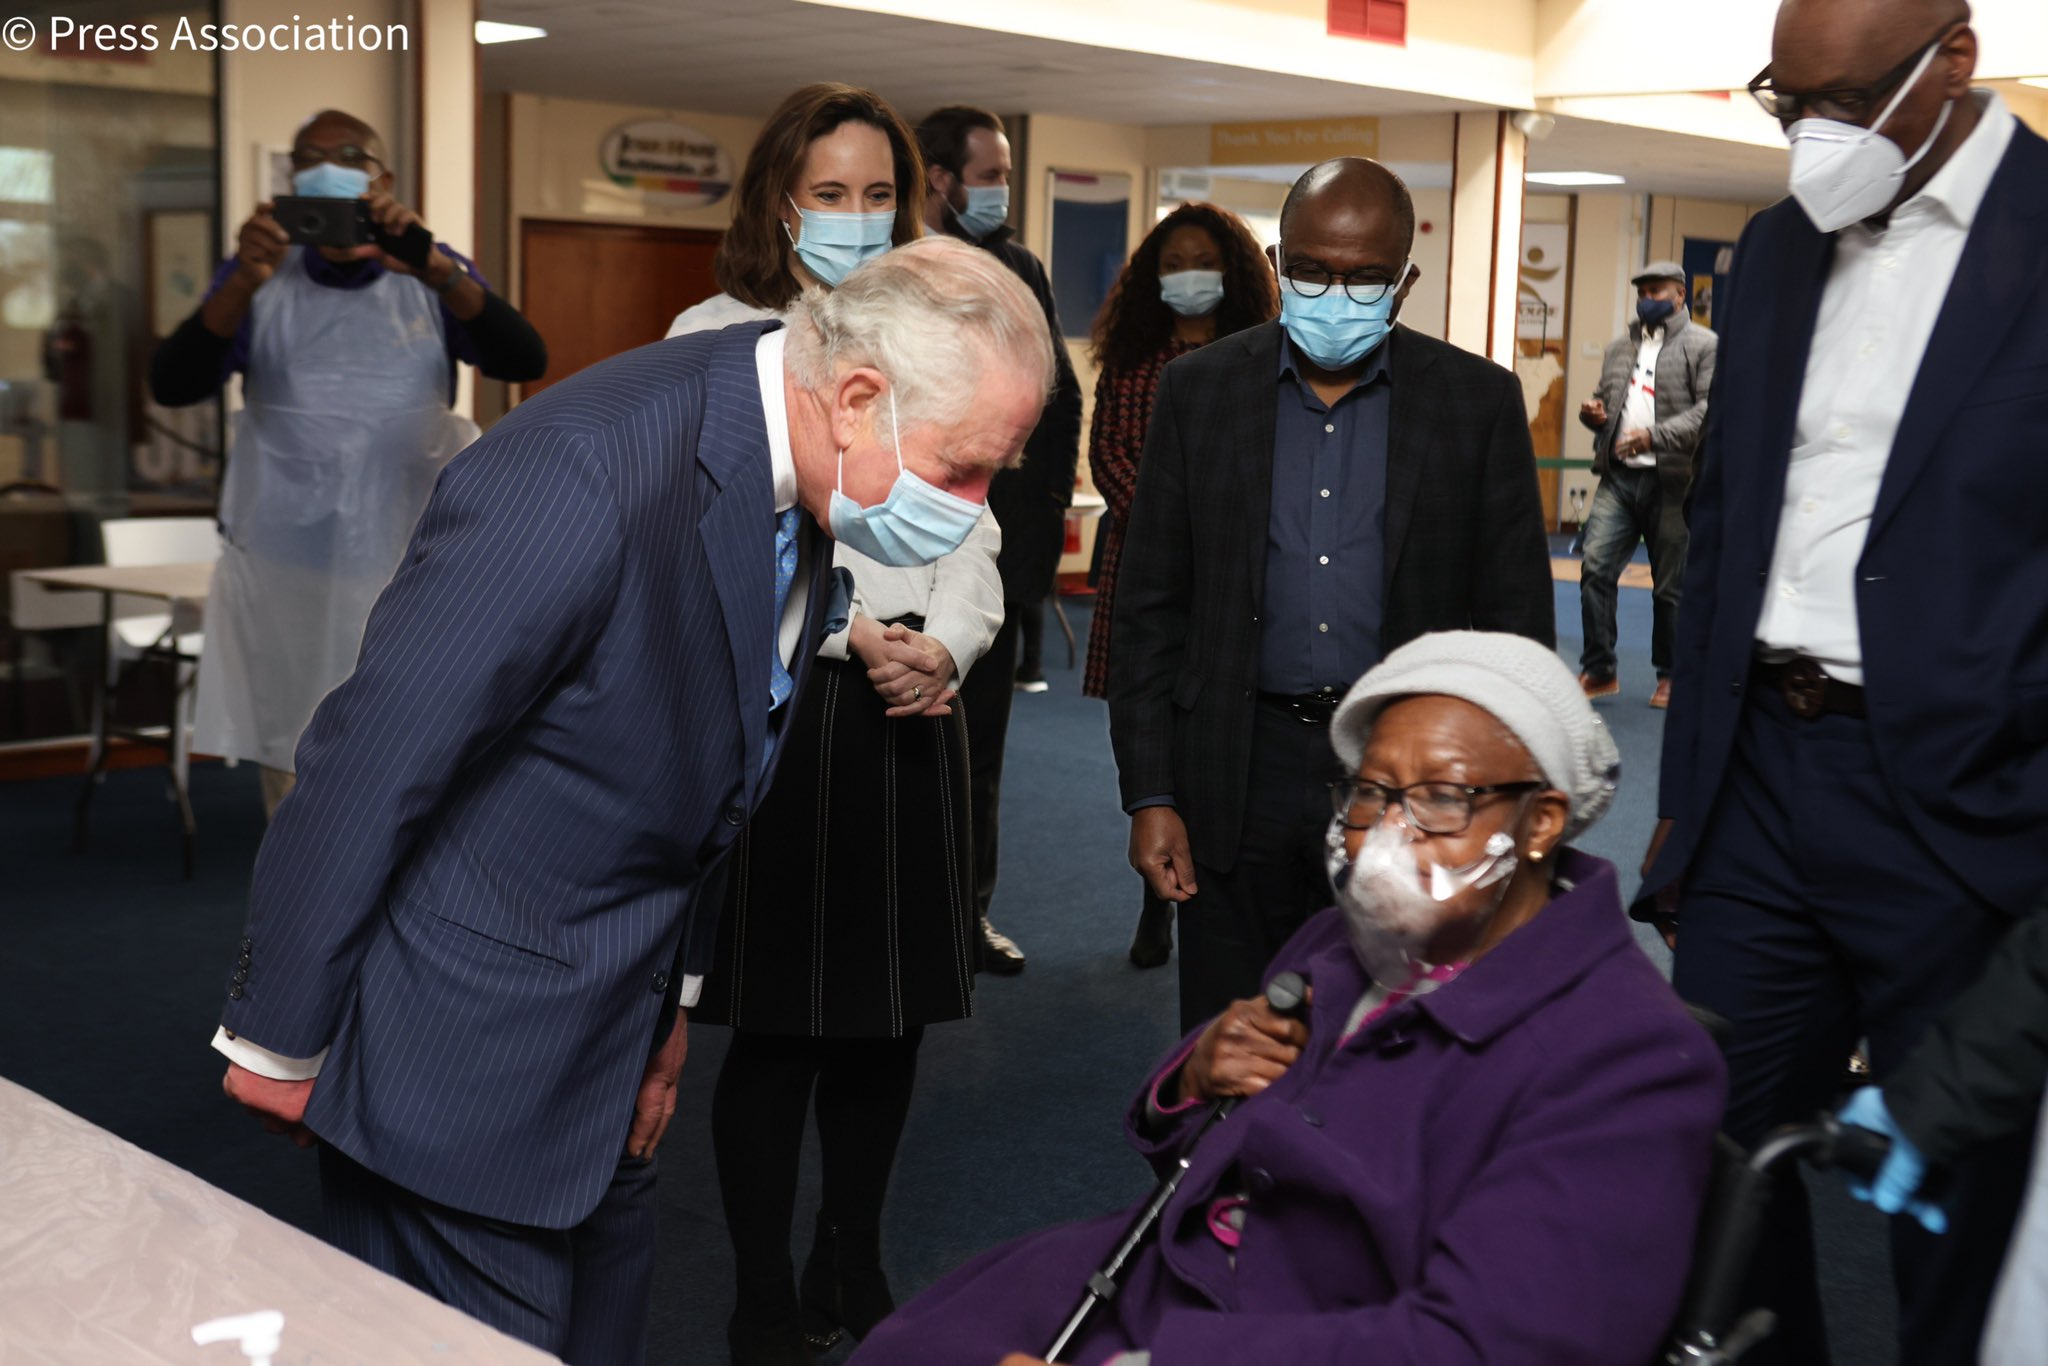 The Prince of Wales visits NHS vaccine pop-up clinic at Jesus House